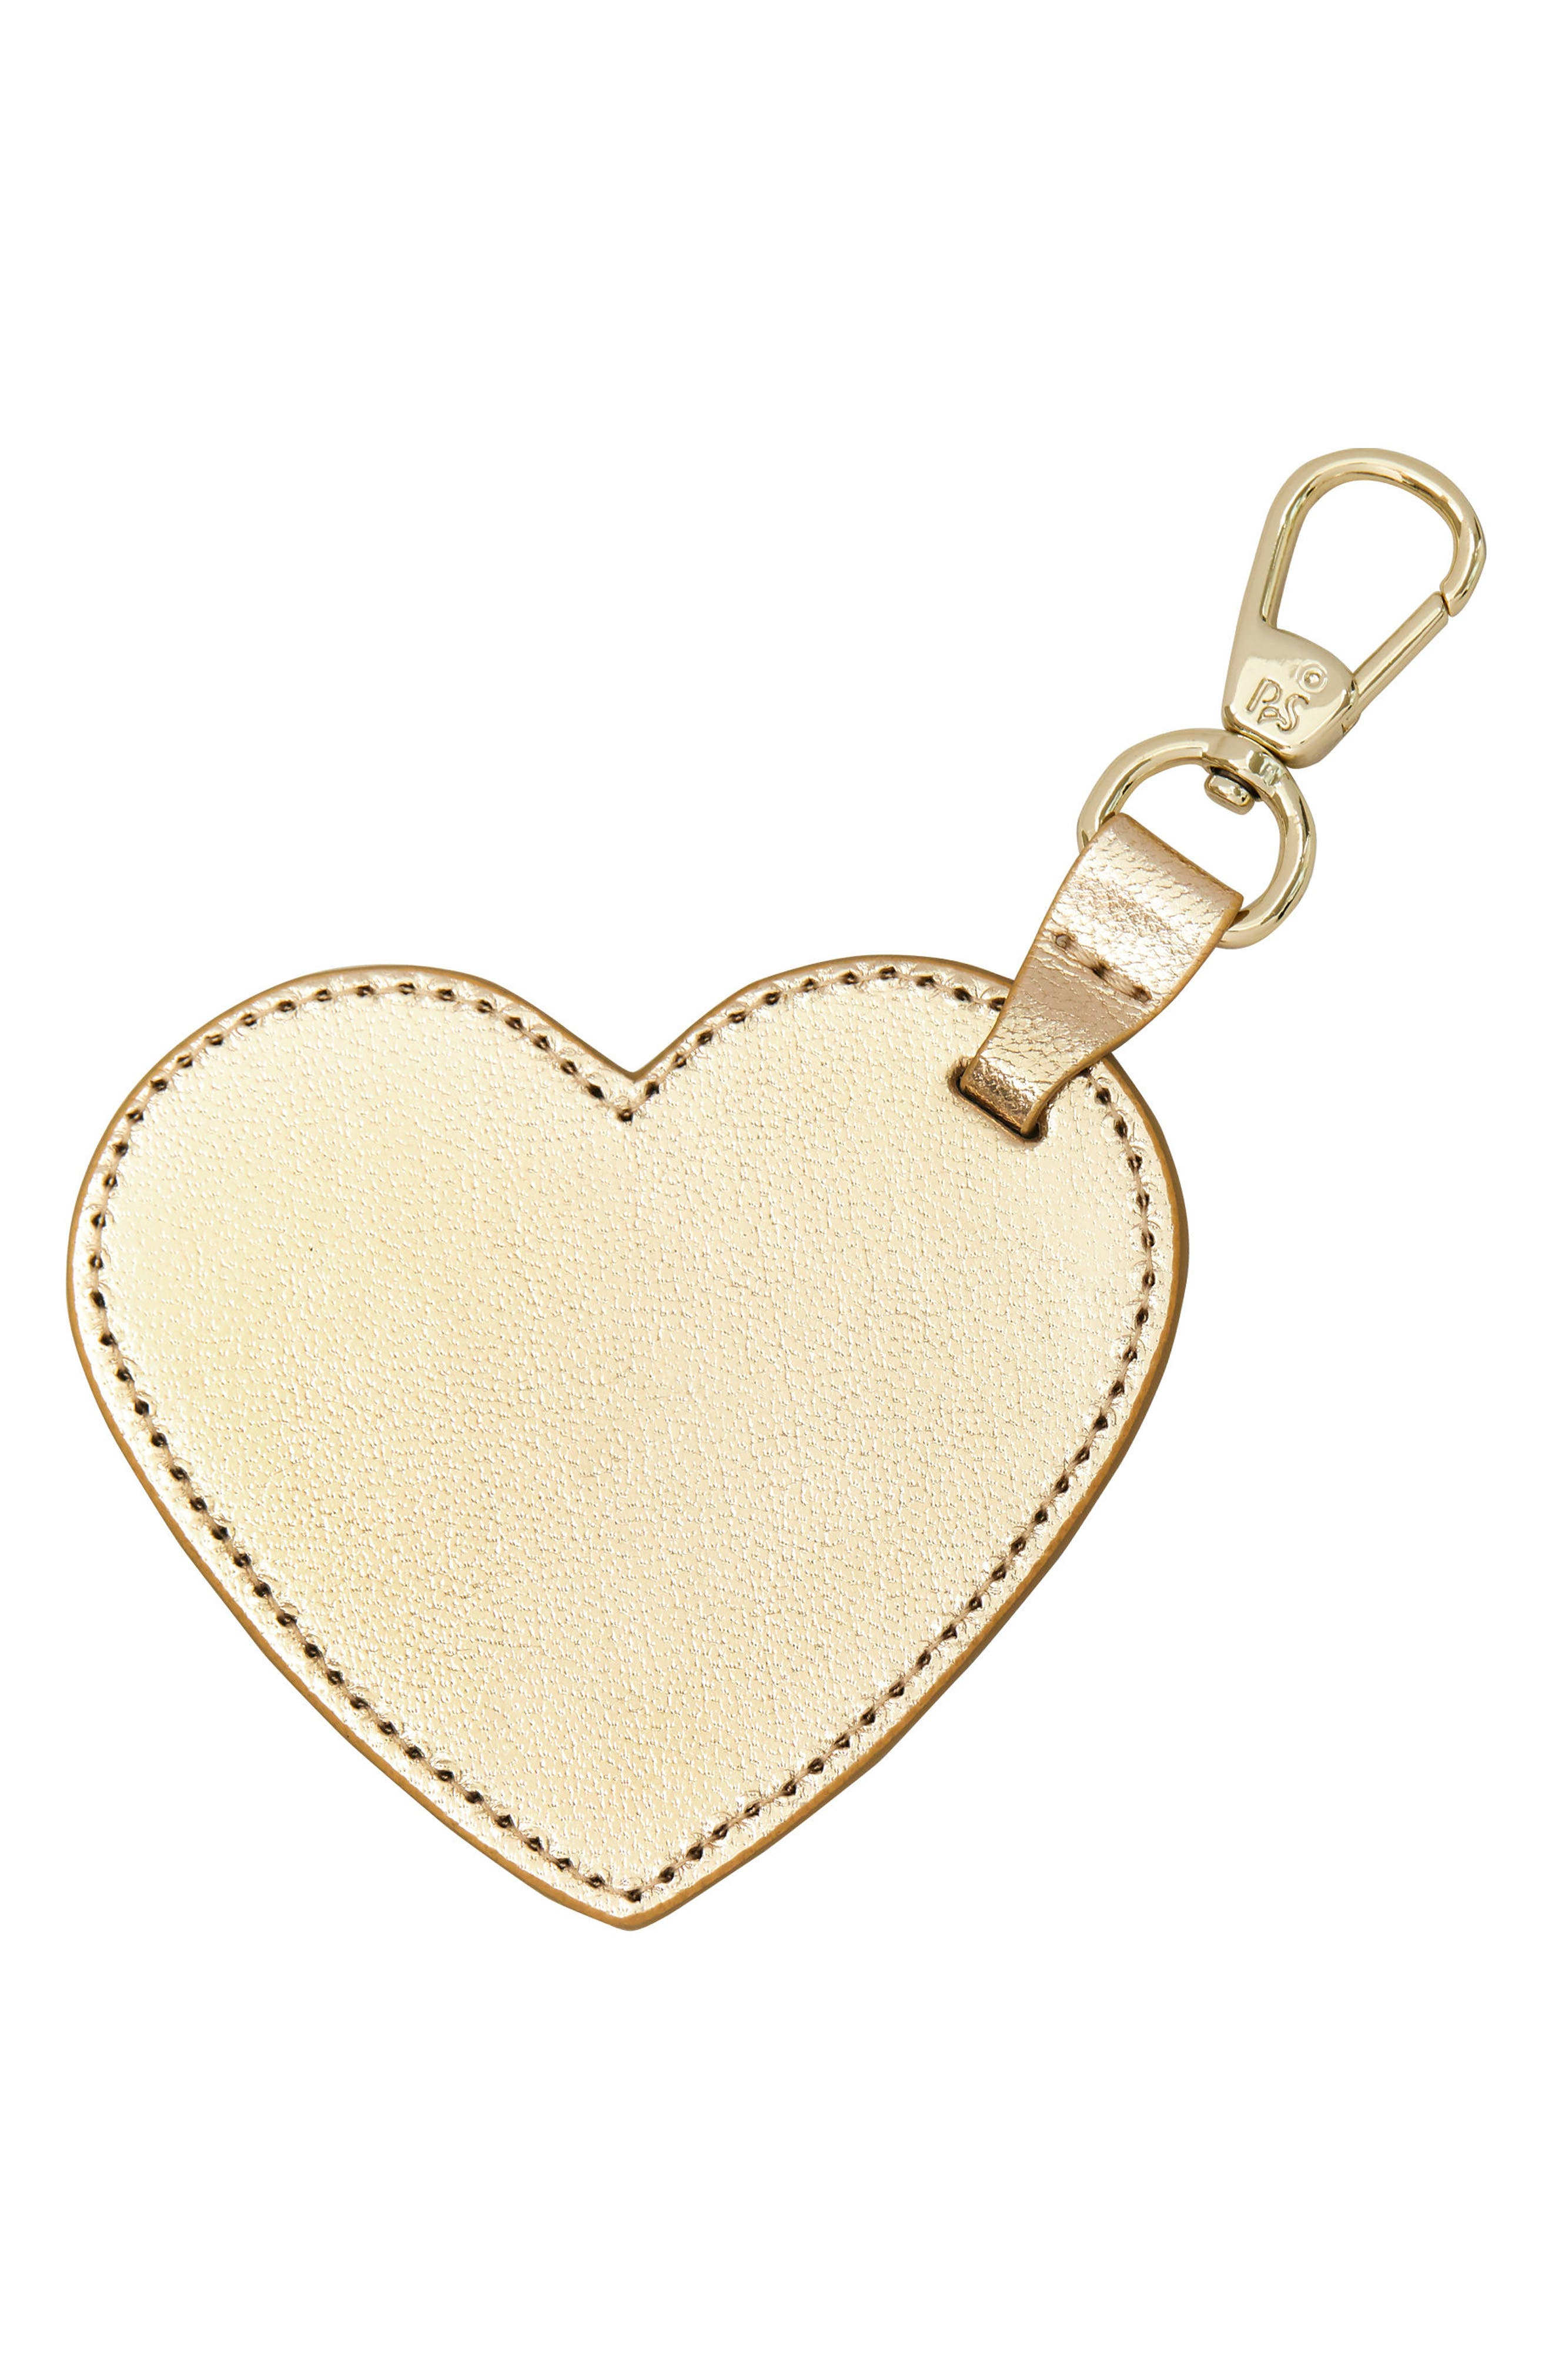 Pop & Suki Smaller Heart Bag Charm (Nordstrom Exclusive)